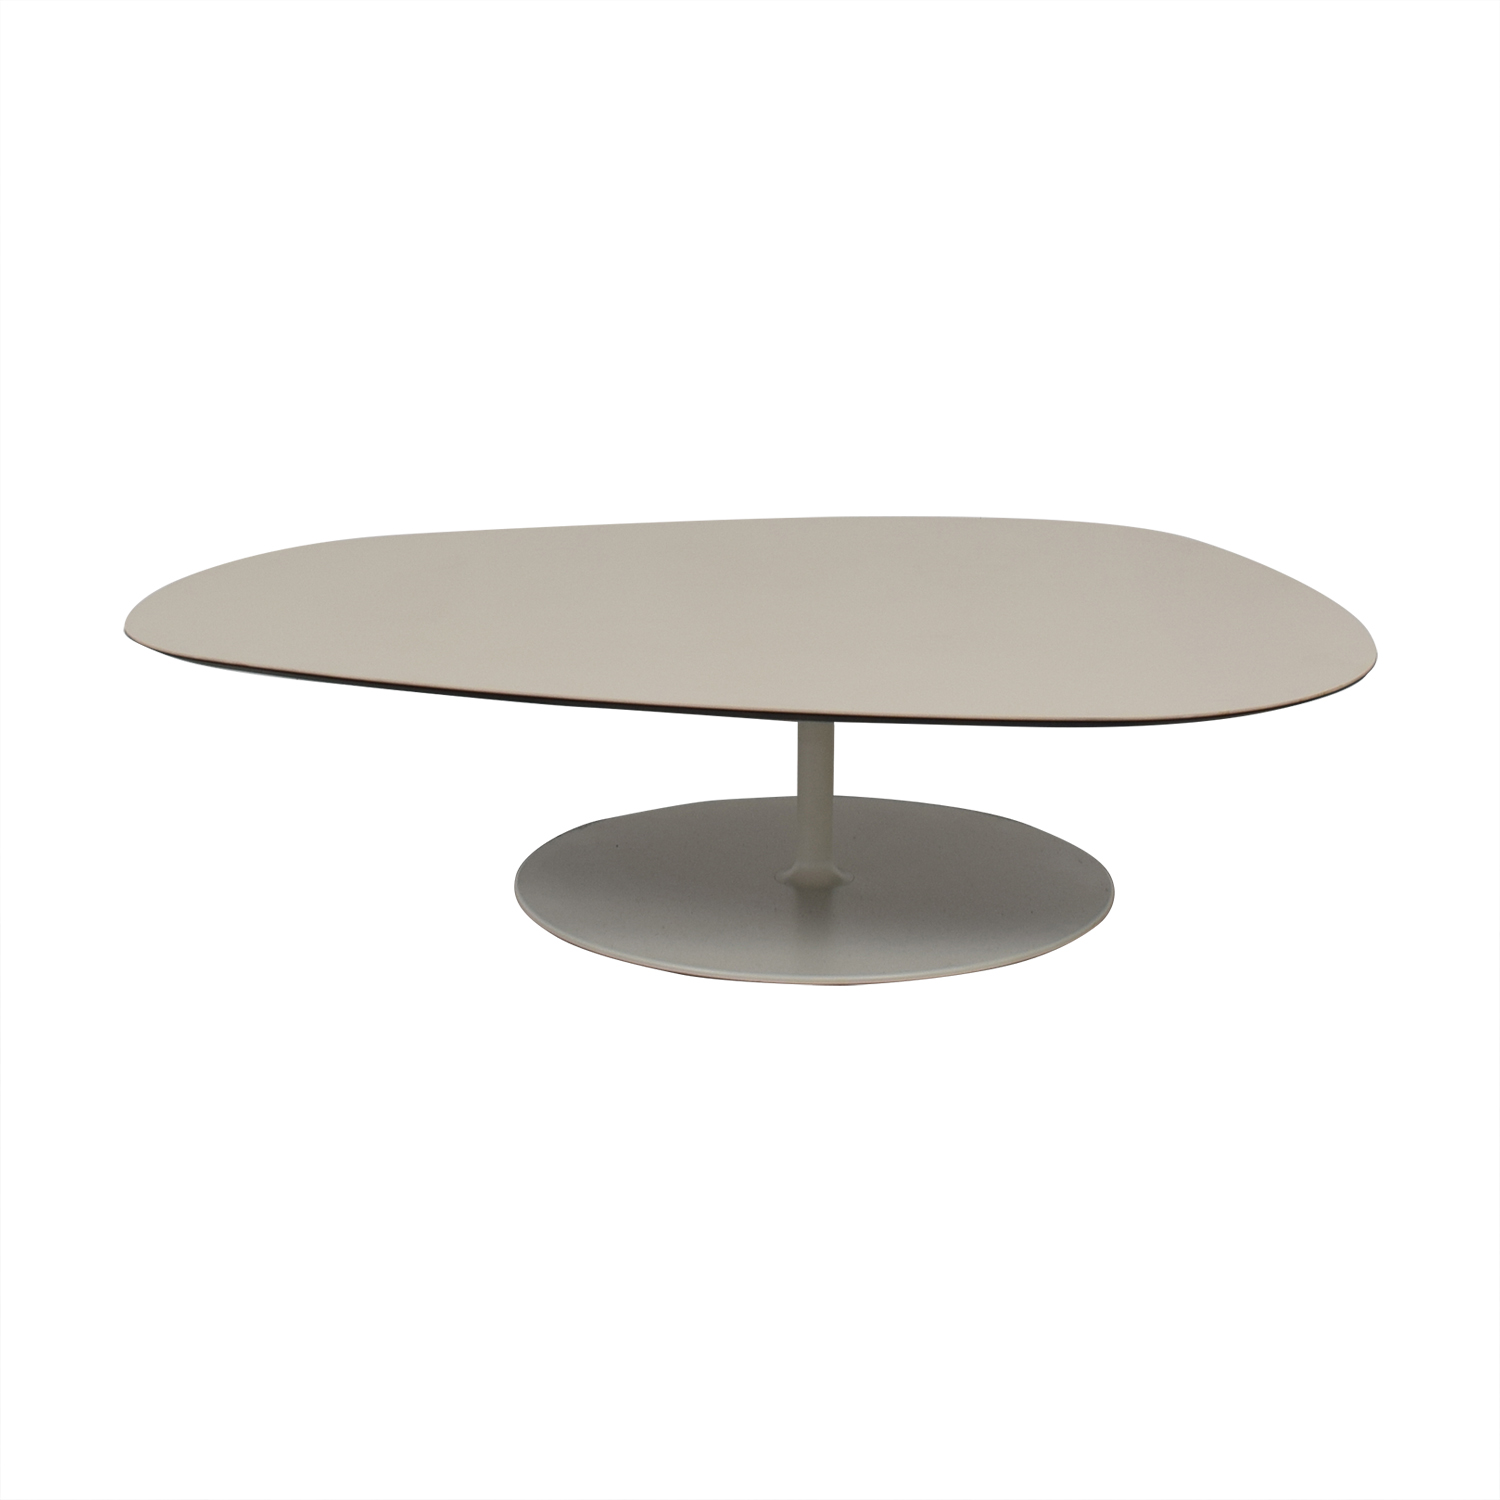 Moroso Phoenix White Rounded Triangular Table / Sofas